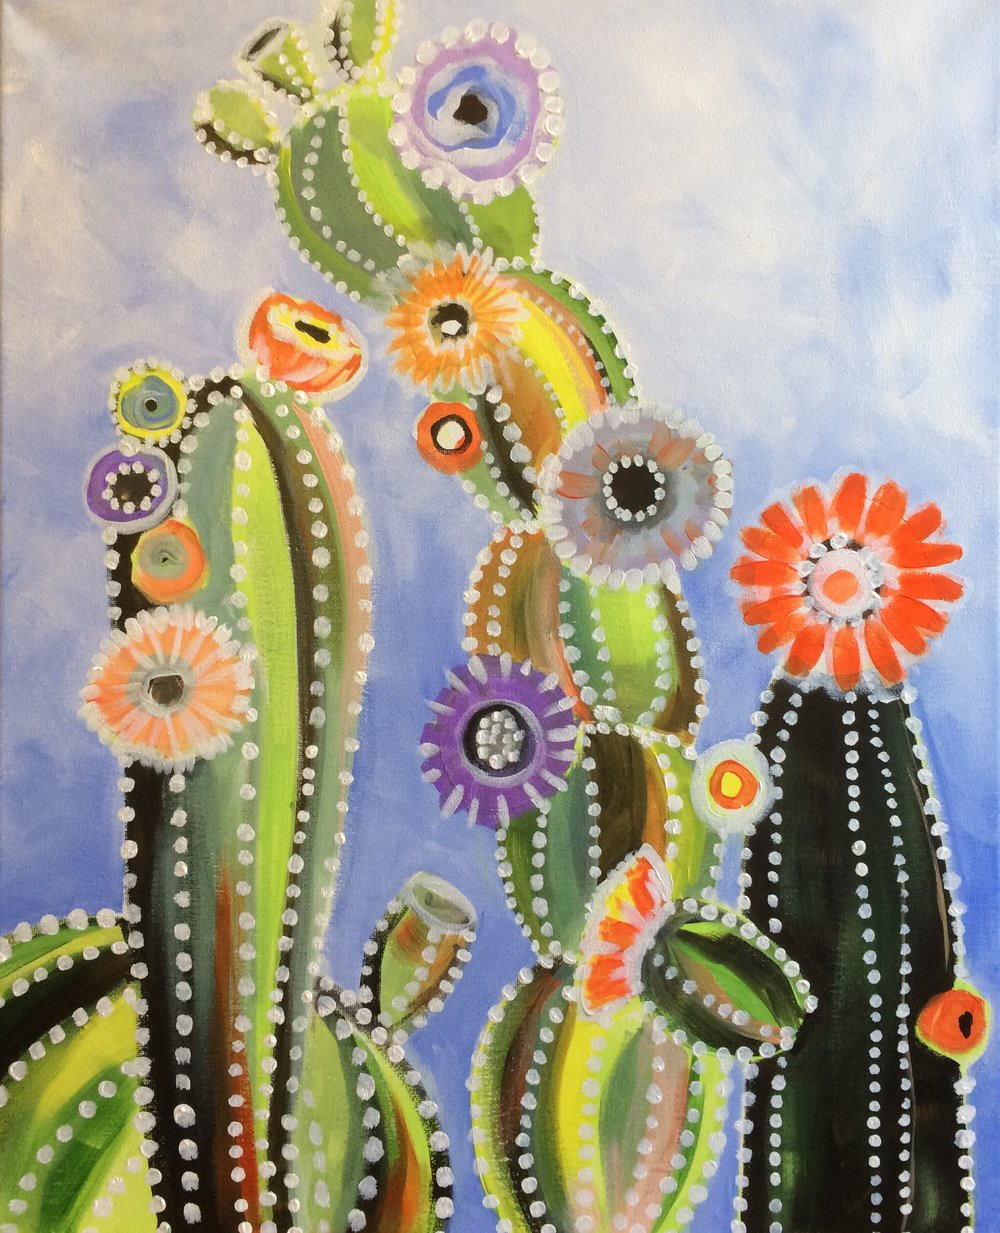 JANUARY 24 - BLOOMING CACTI